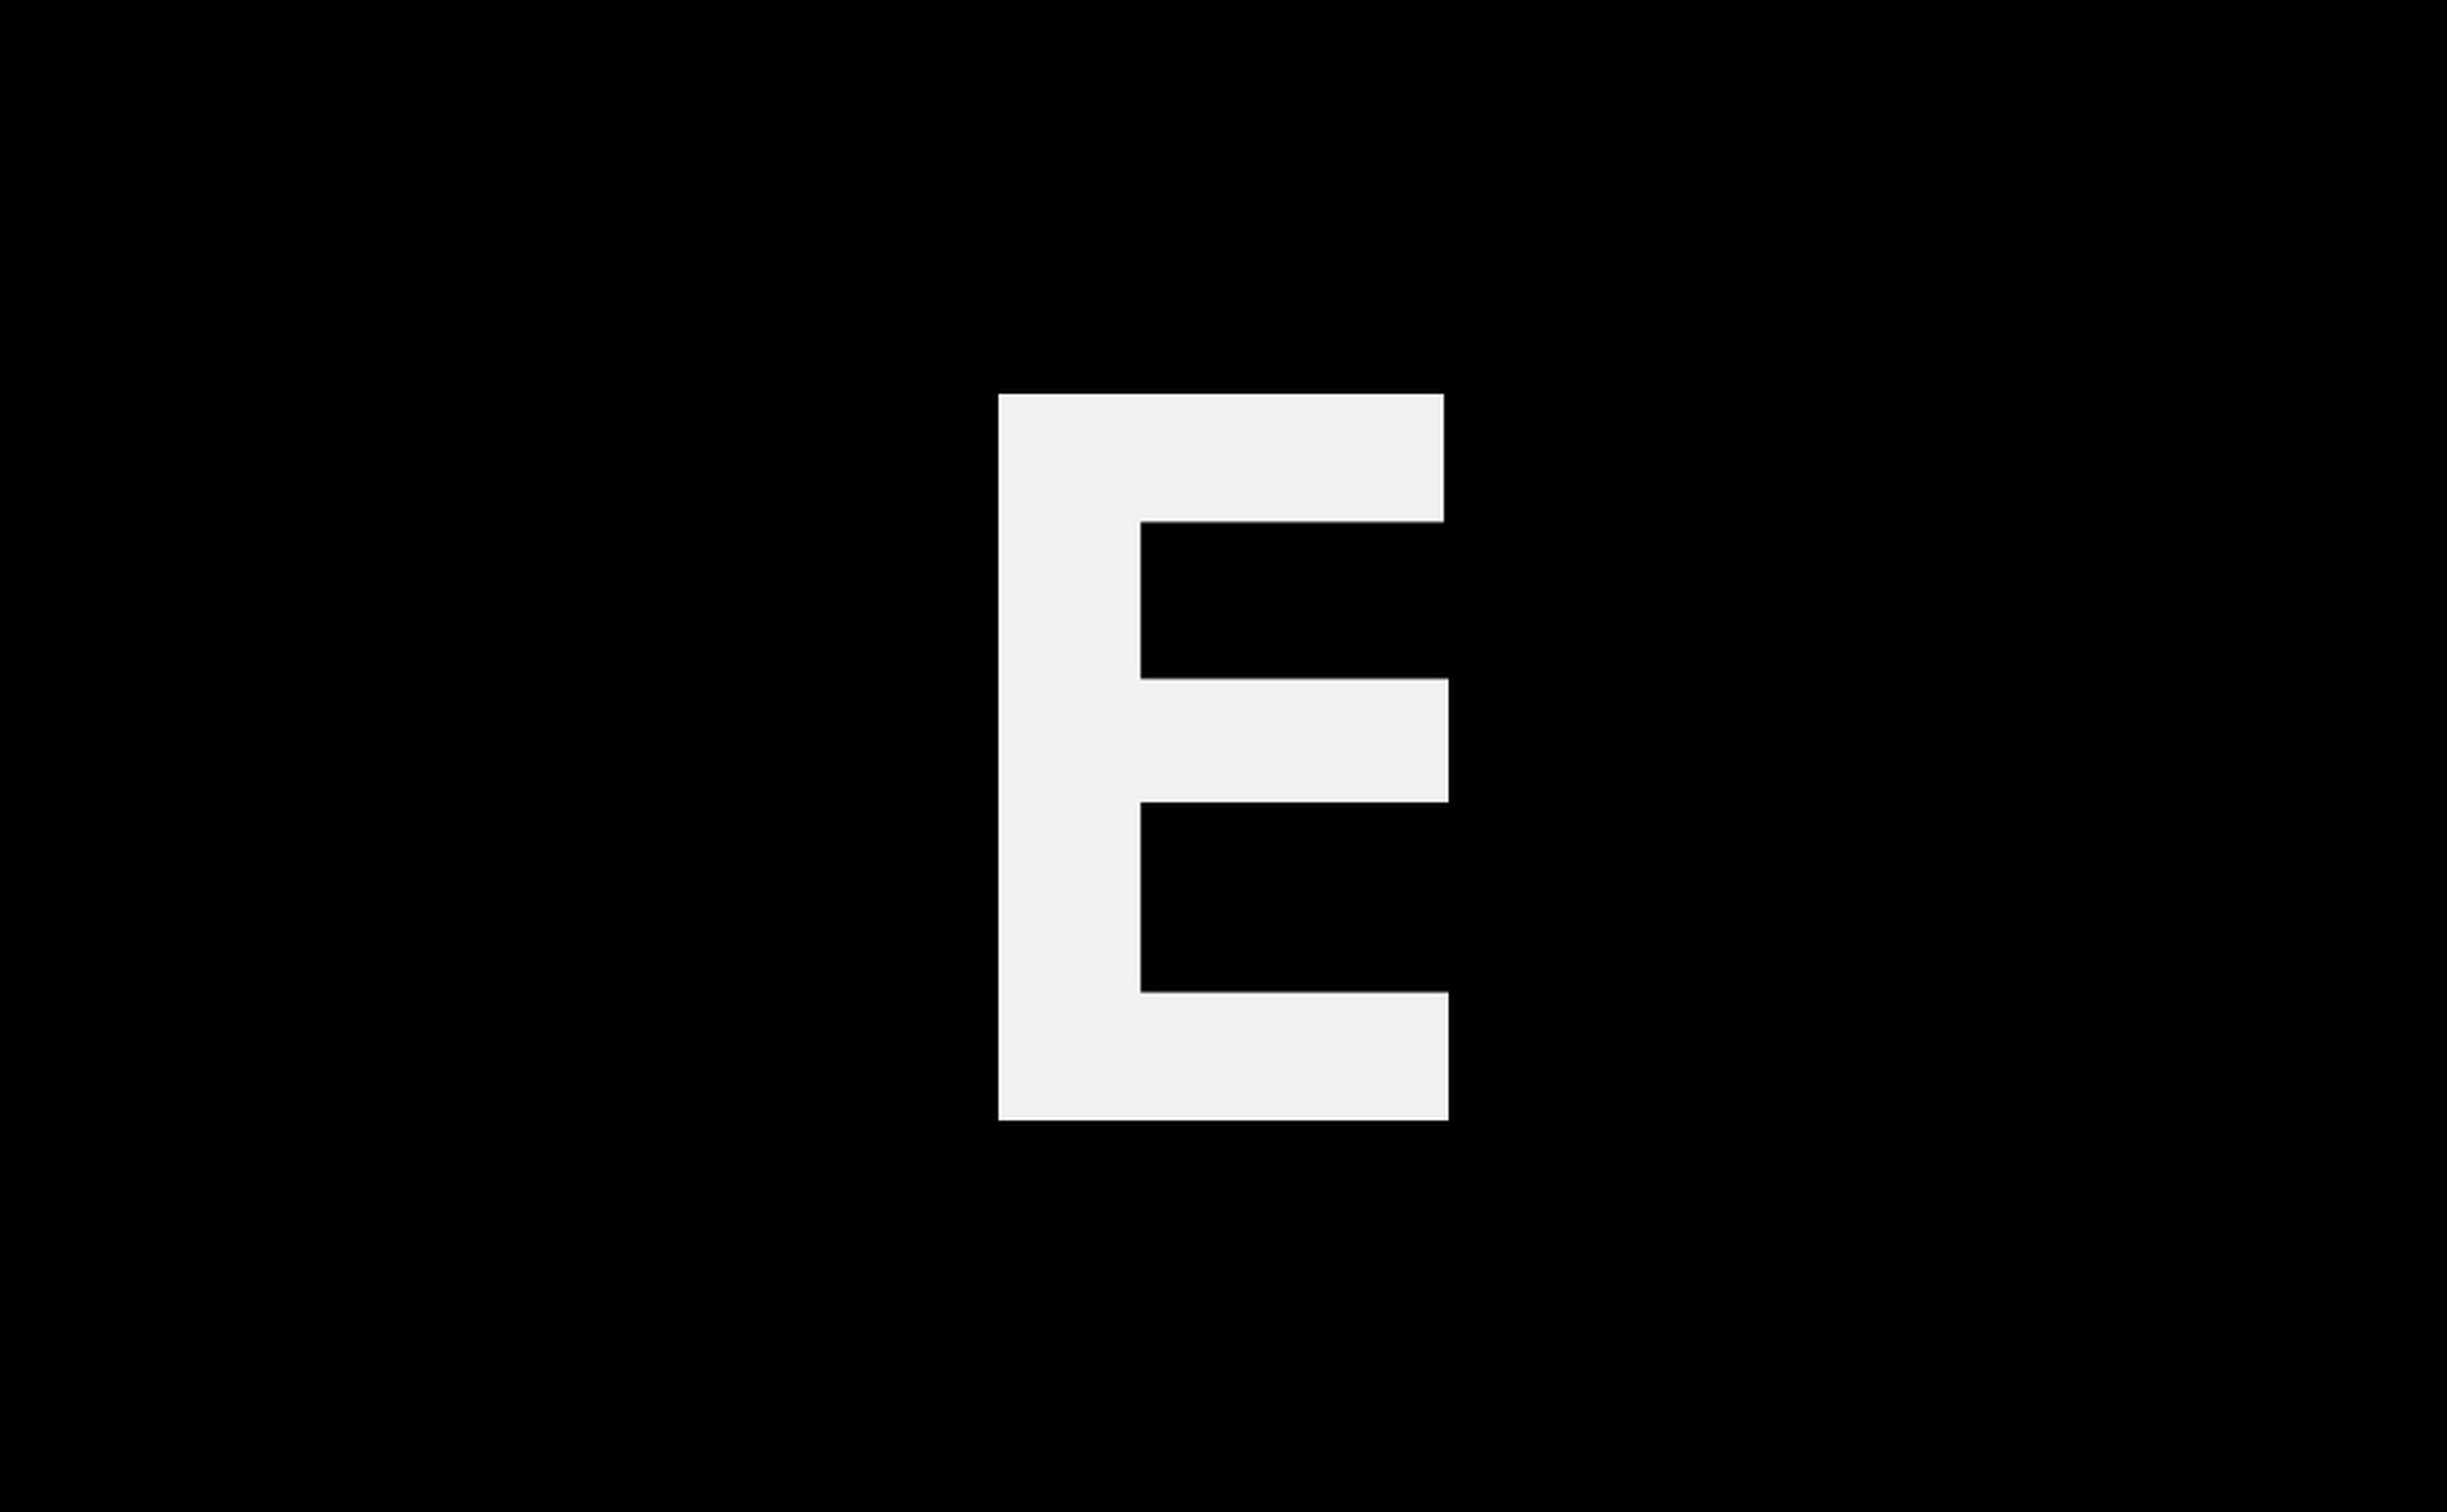 RIVER BY ILLUMINATED BUILDINGS AGAINST SKY AT NIGHT